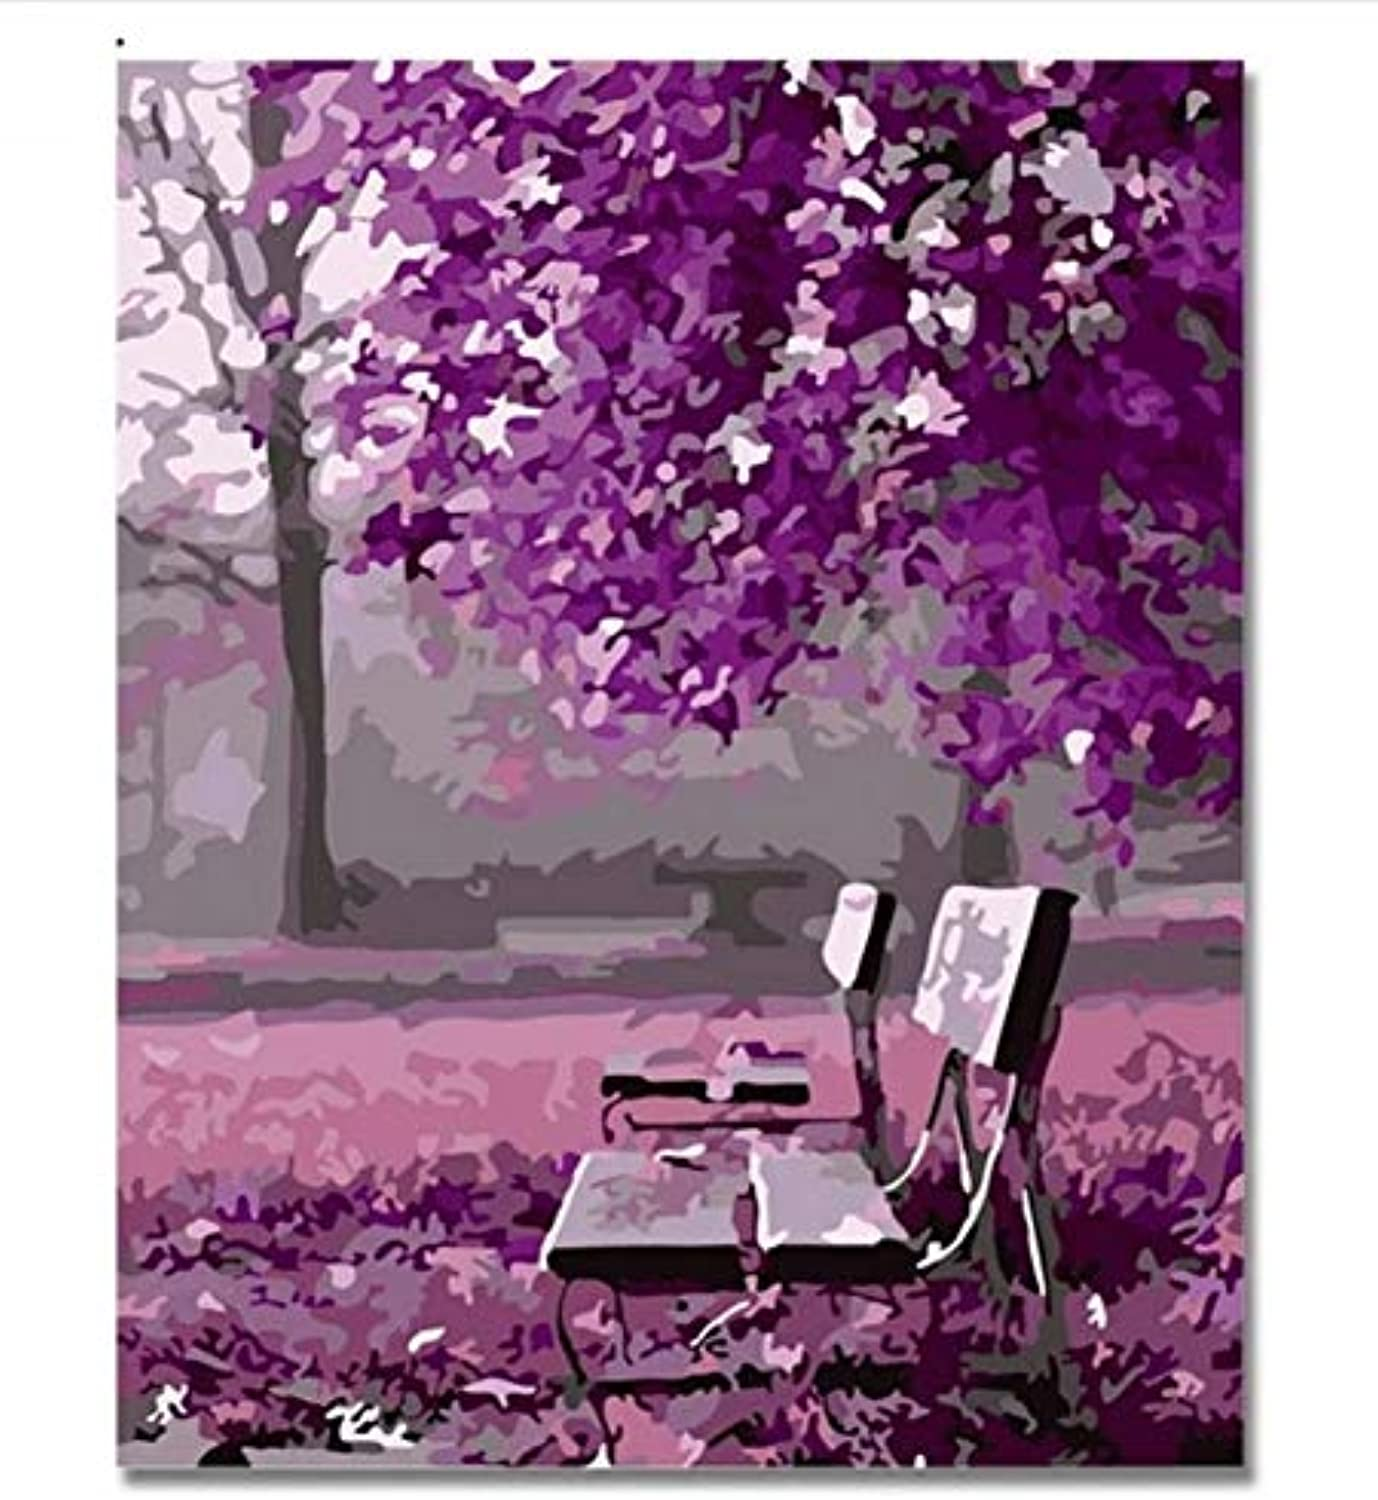 UPUPUPUP Purple Romantic Pictures By Numbers Diy Hand Painted Park Tree Chair Wall Oil Painting By Number Artwork Home Decor Gift,Tworidc550X70Cm Framed